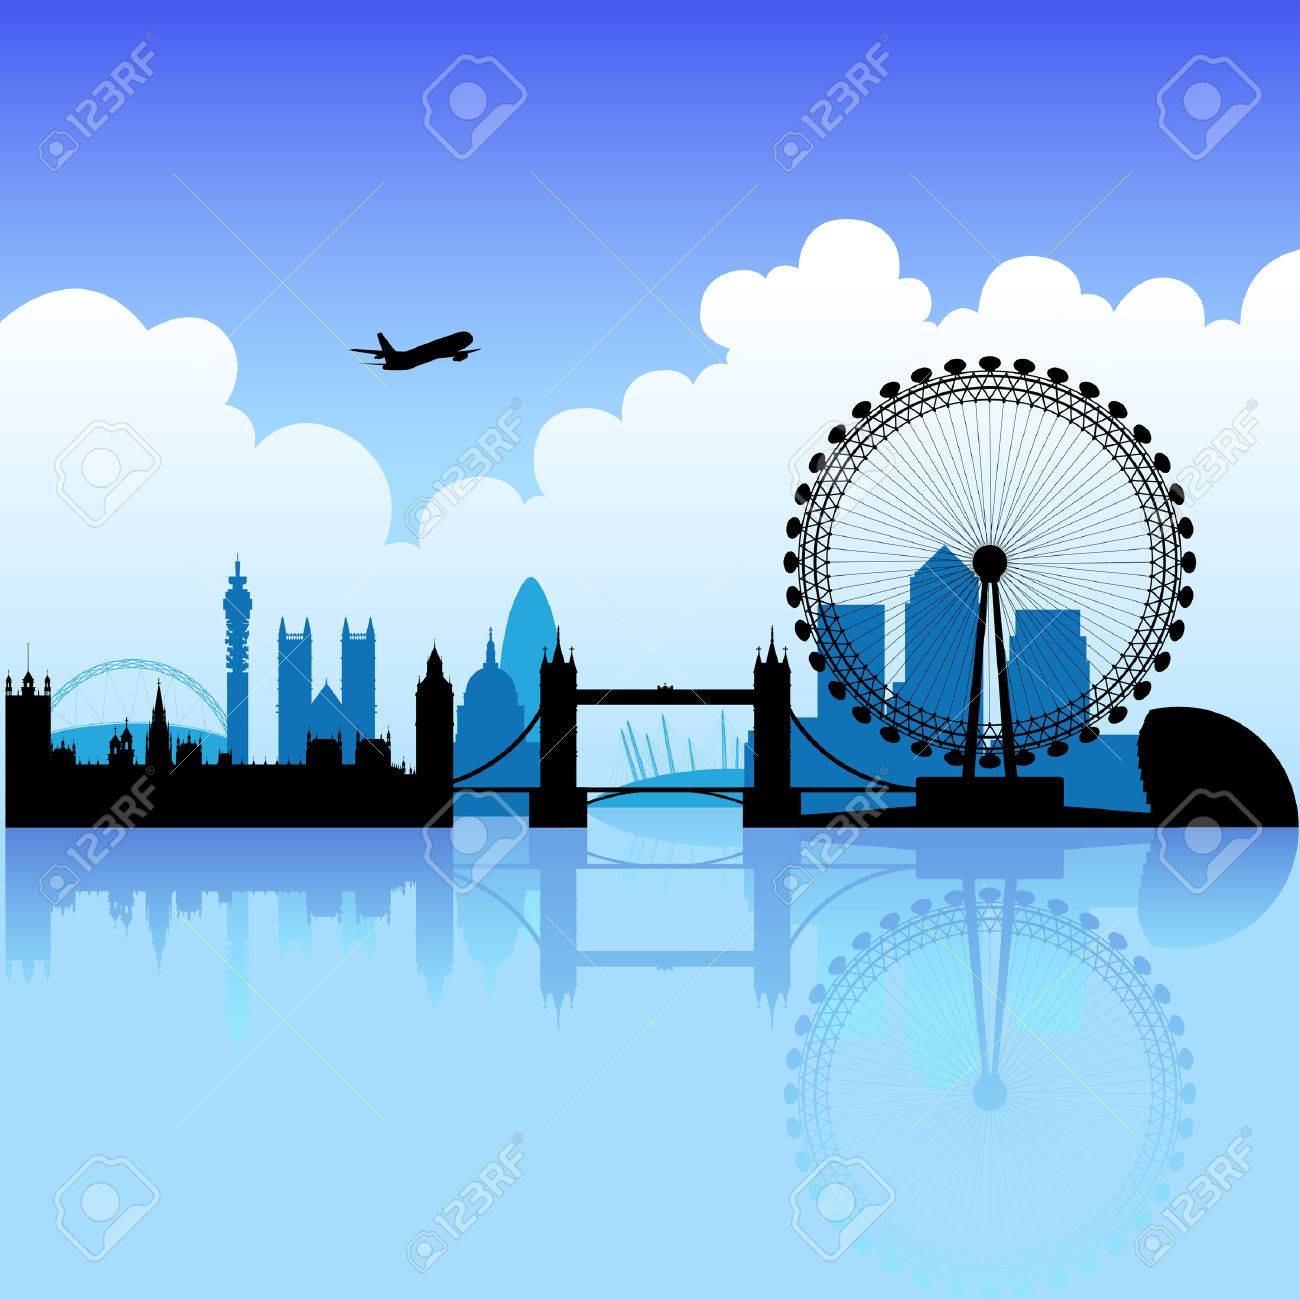 London skyline silhouette on a bright partly cloudy day Stock Vector - 3915589